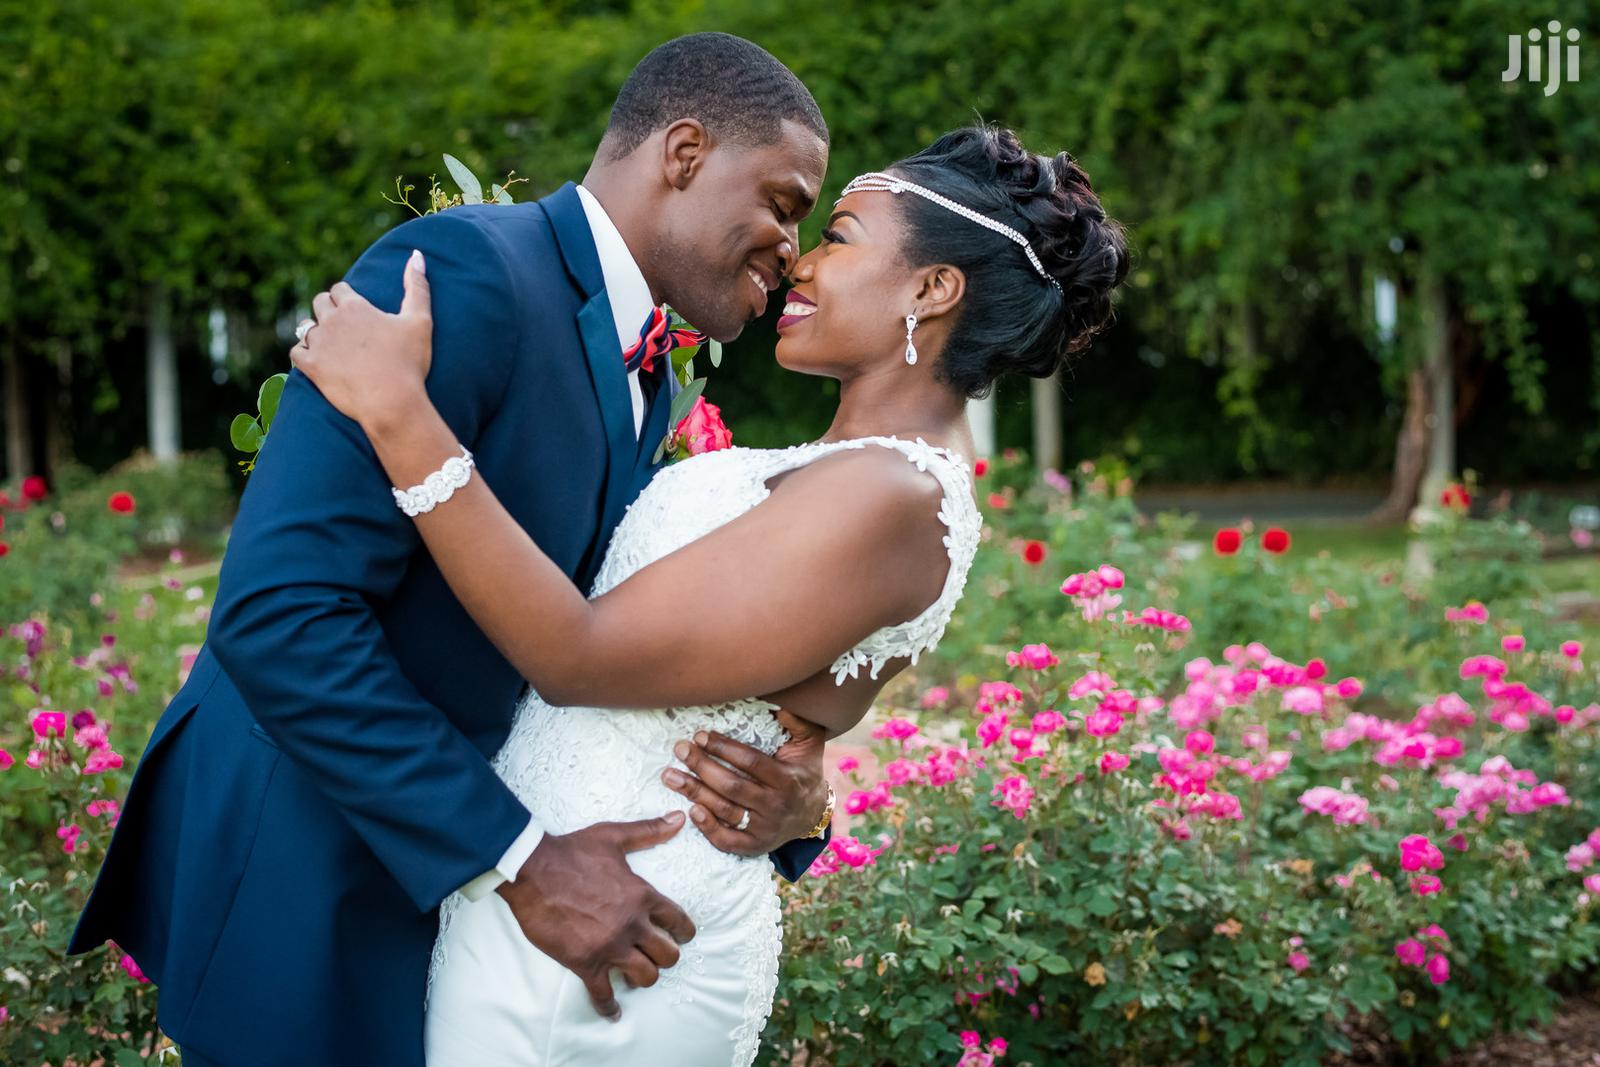 Wedding / Event Photography And Video Coverage | Wedding Venues & Services for sale in Accra Metropolitan, Greater Accra, Ghana